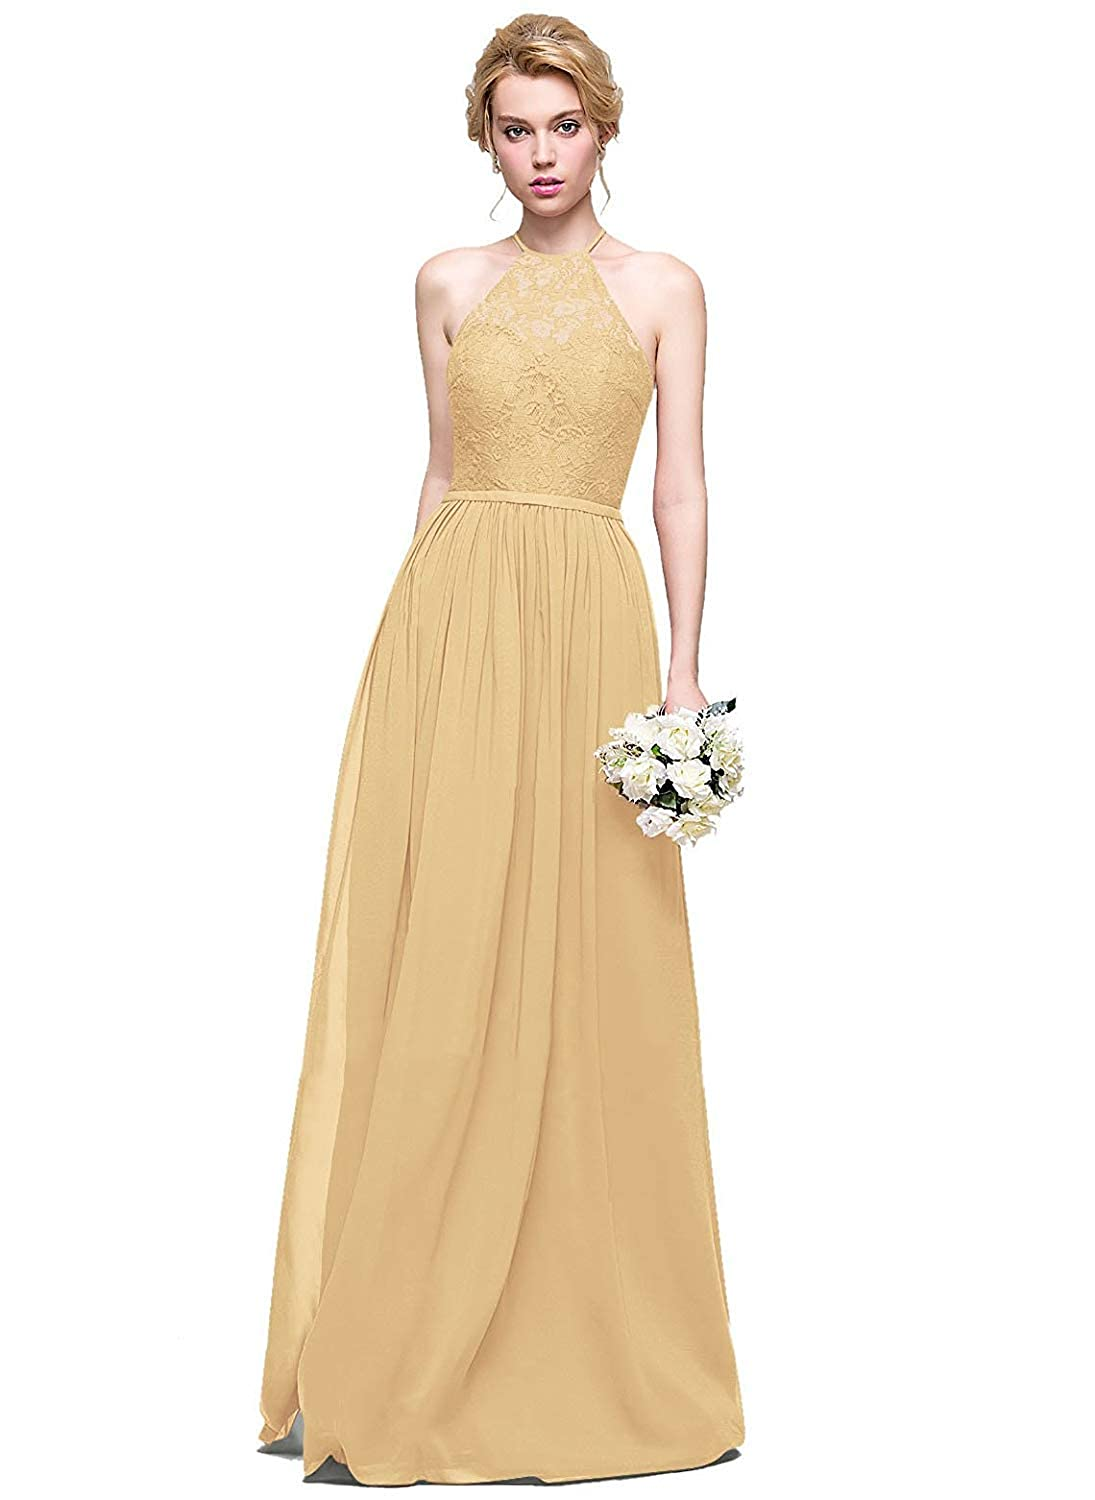 gold Halter Lace Sweetheart Neck Bridesmaid Dresses Long Prom Evening Gown